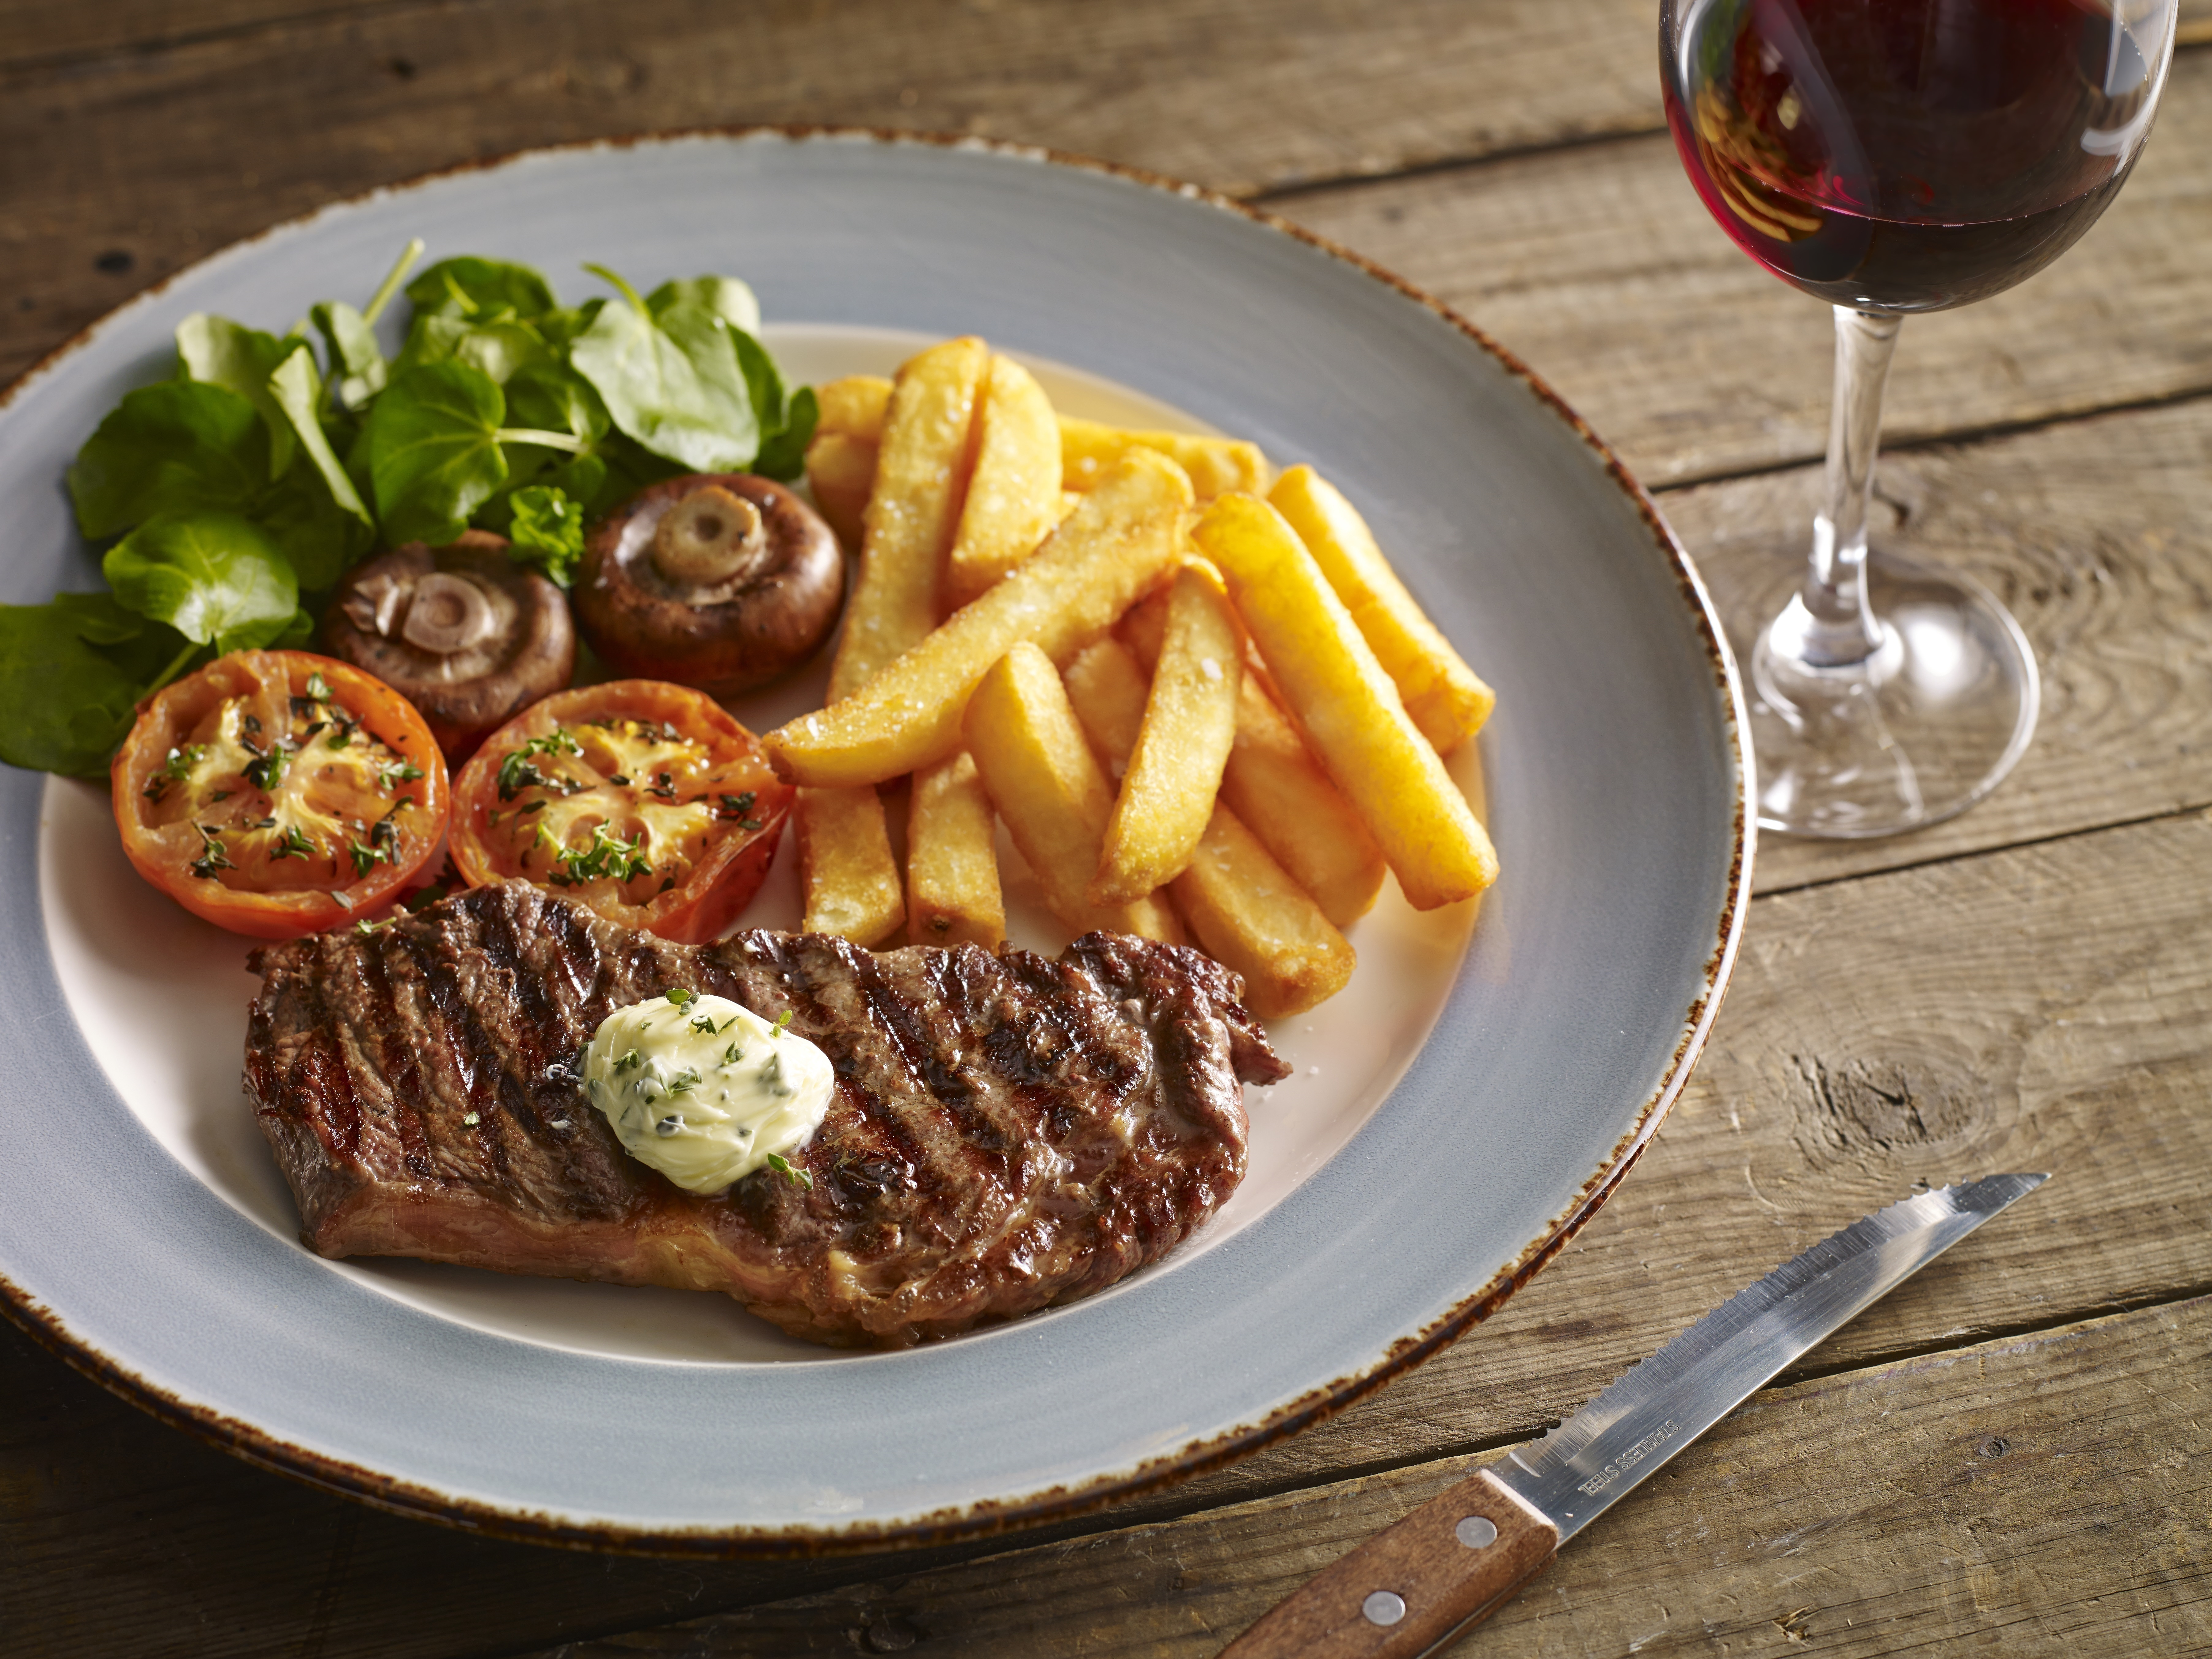 Reserve a table at Ye Olde Swan - Thames Ditton